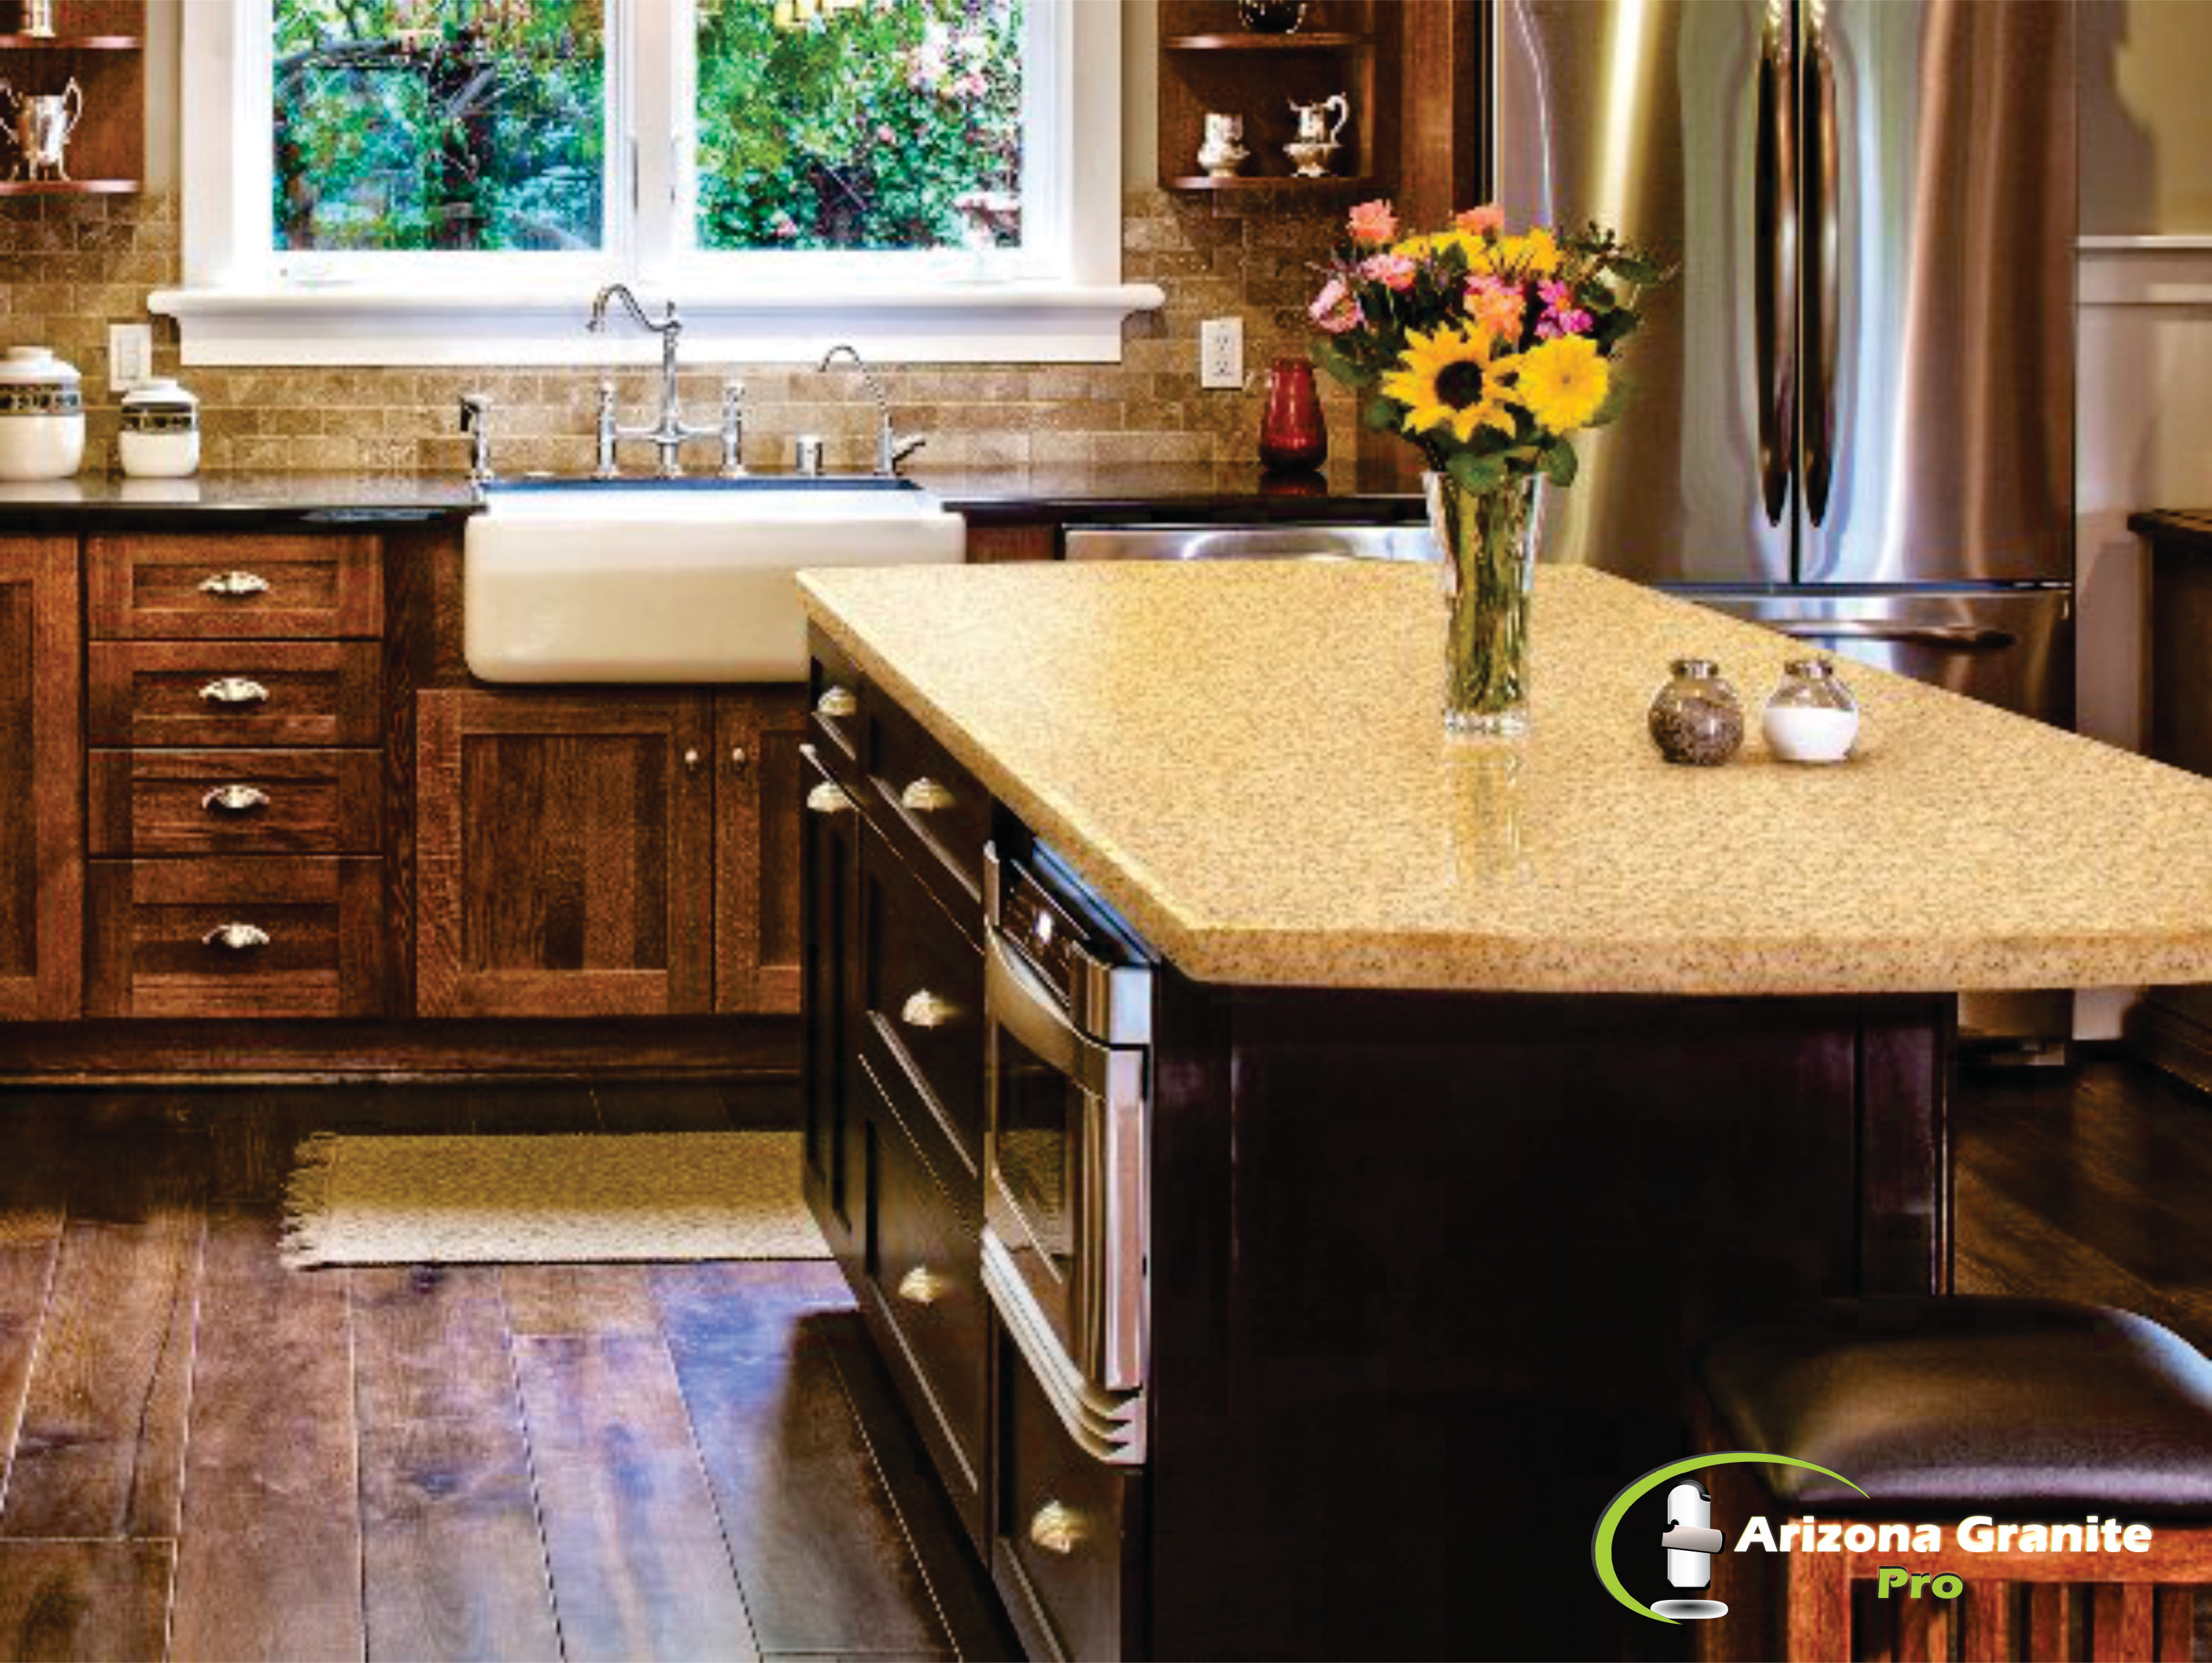 Granite-Kitchen-Countertop. Arizonagranitepro.5